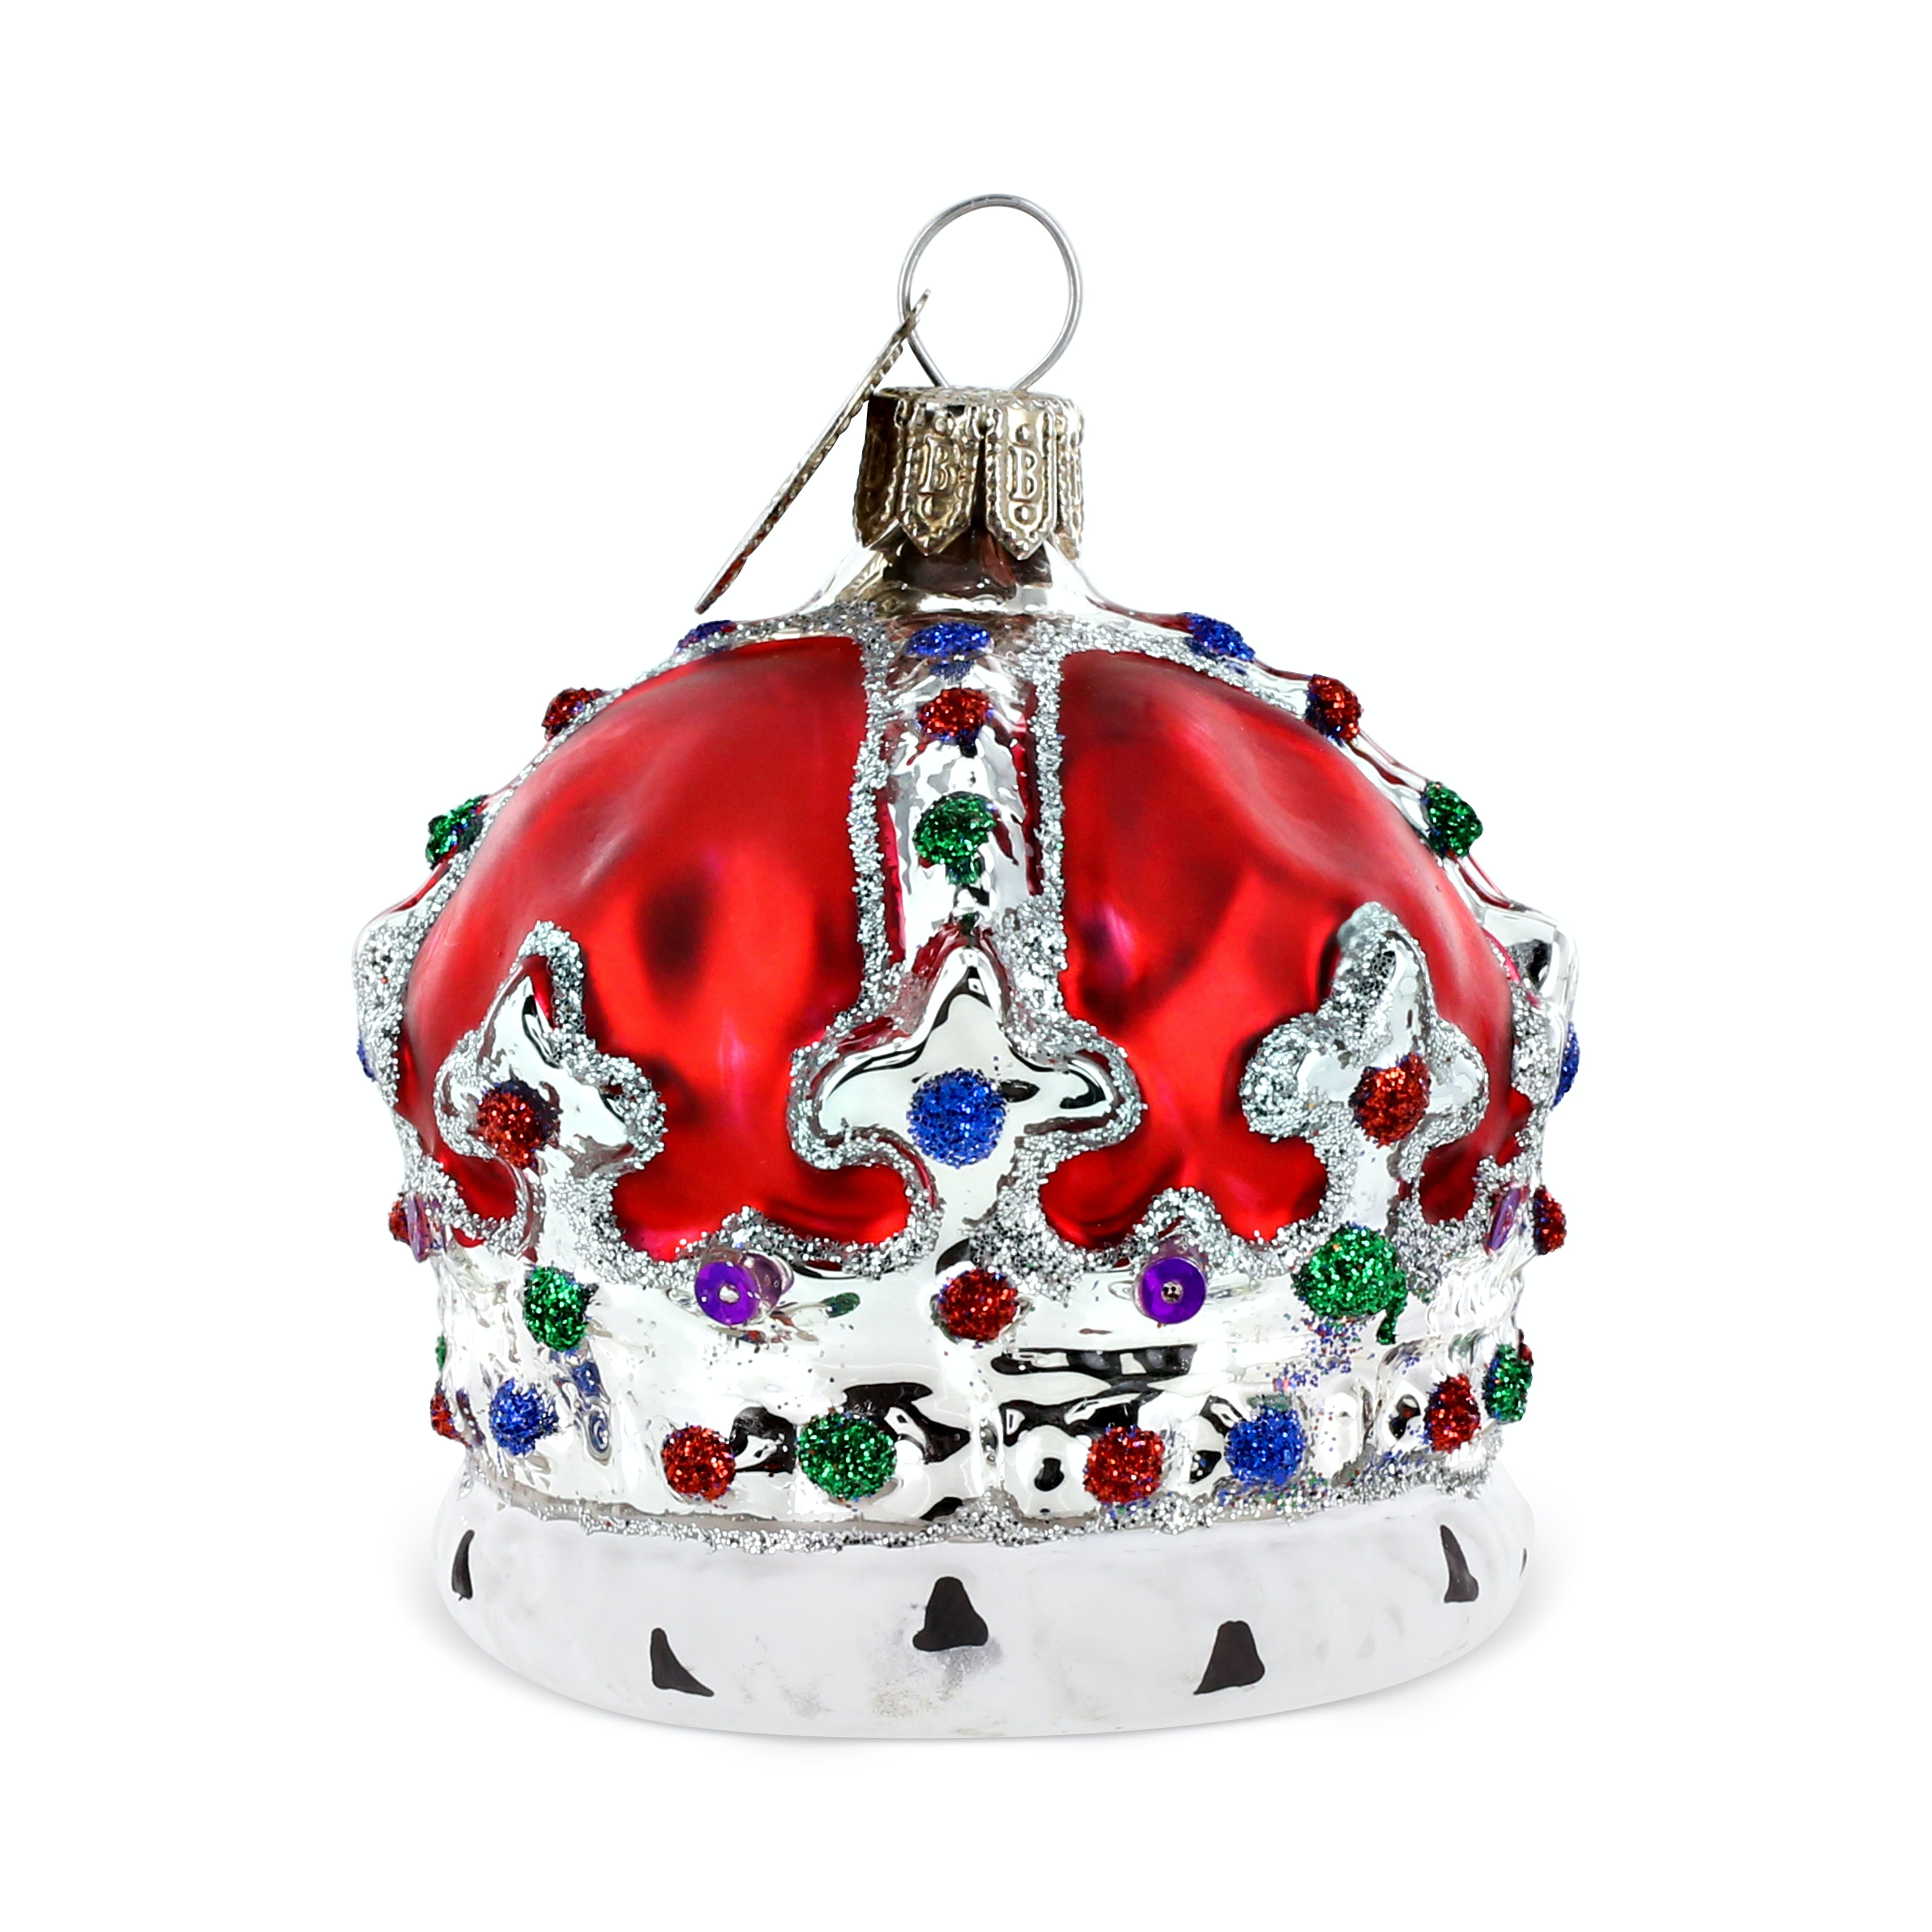 This red crown tree decoration has been blown by mouth from glass and is beautifully hand decorated with a thin layer of silver plate added to the inside.